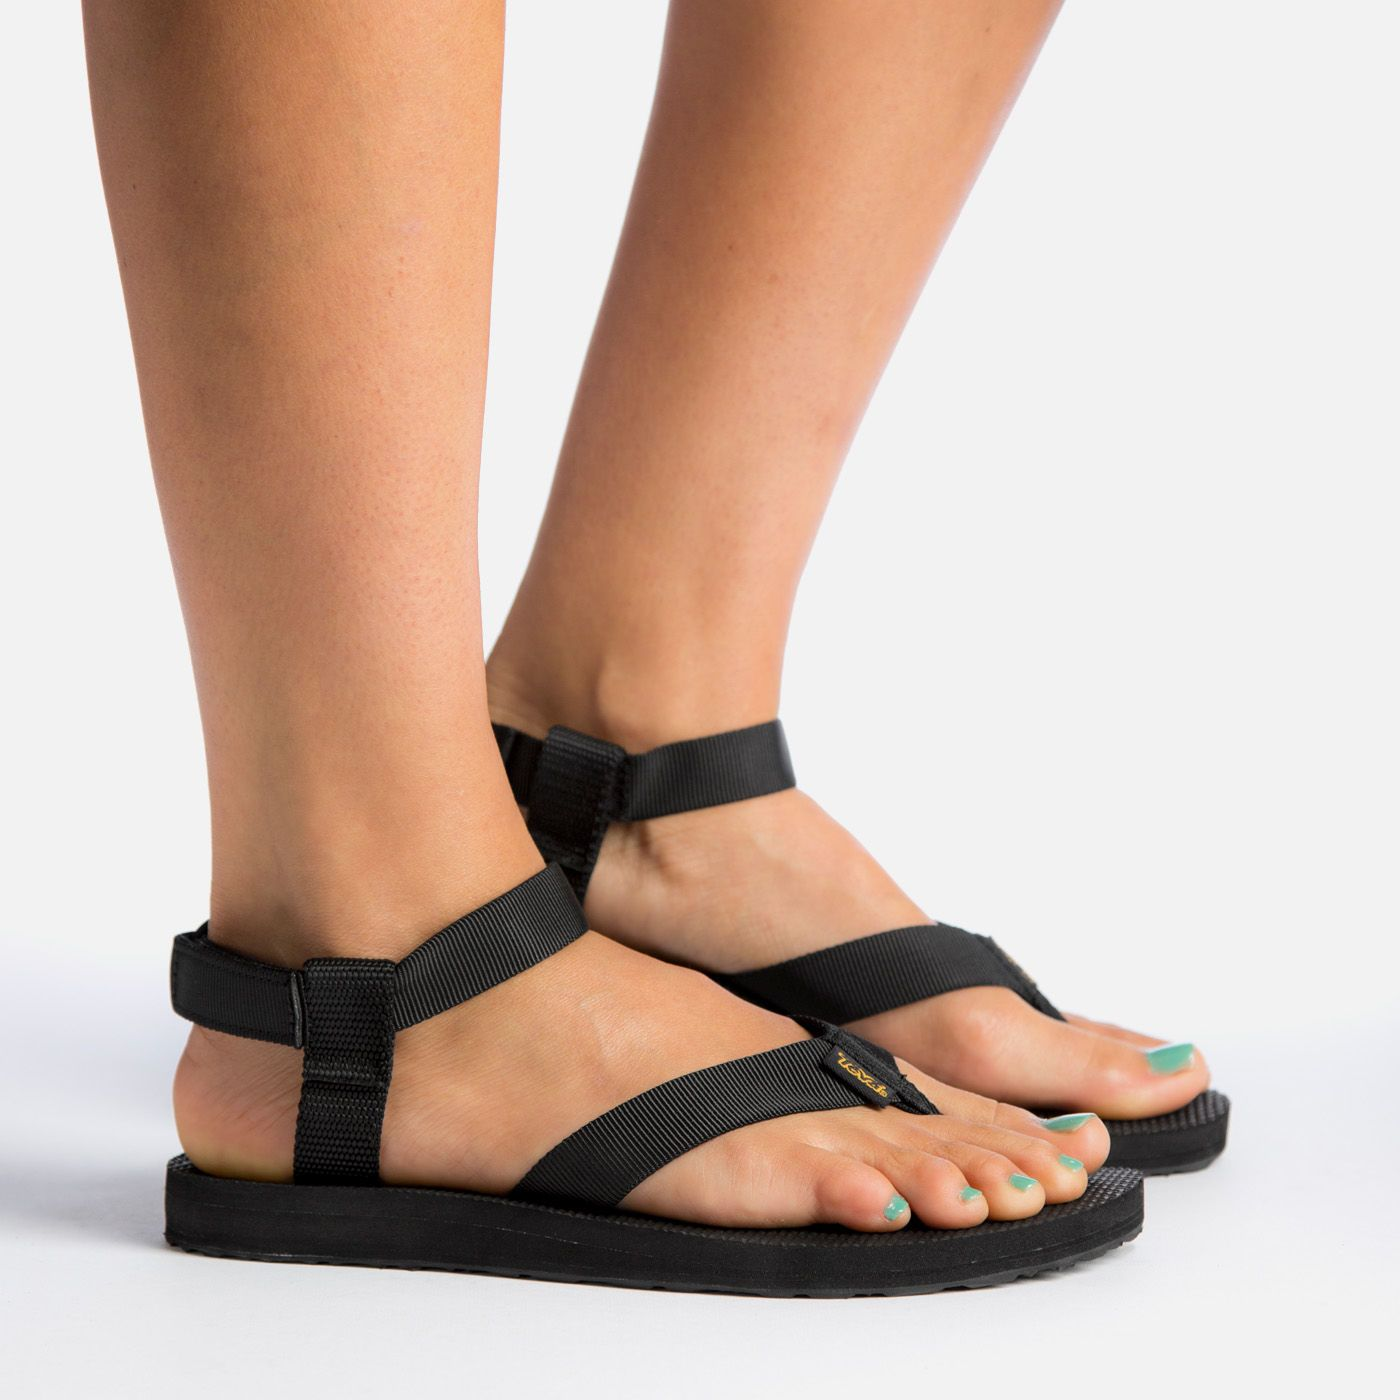 5cf439040 Free Shipping   Free Returns on Authentic Teva® Women s sandals. Shop our  entire Collection of sandals for women including the Original Sandal at Teva .com